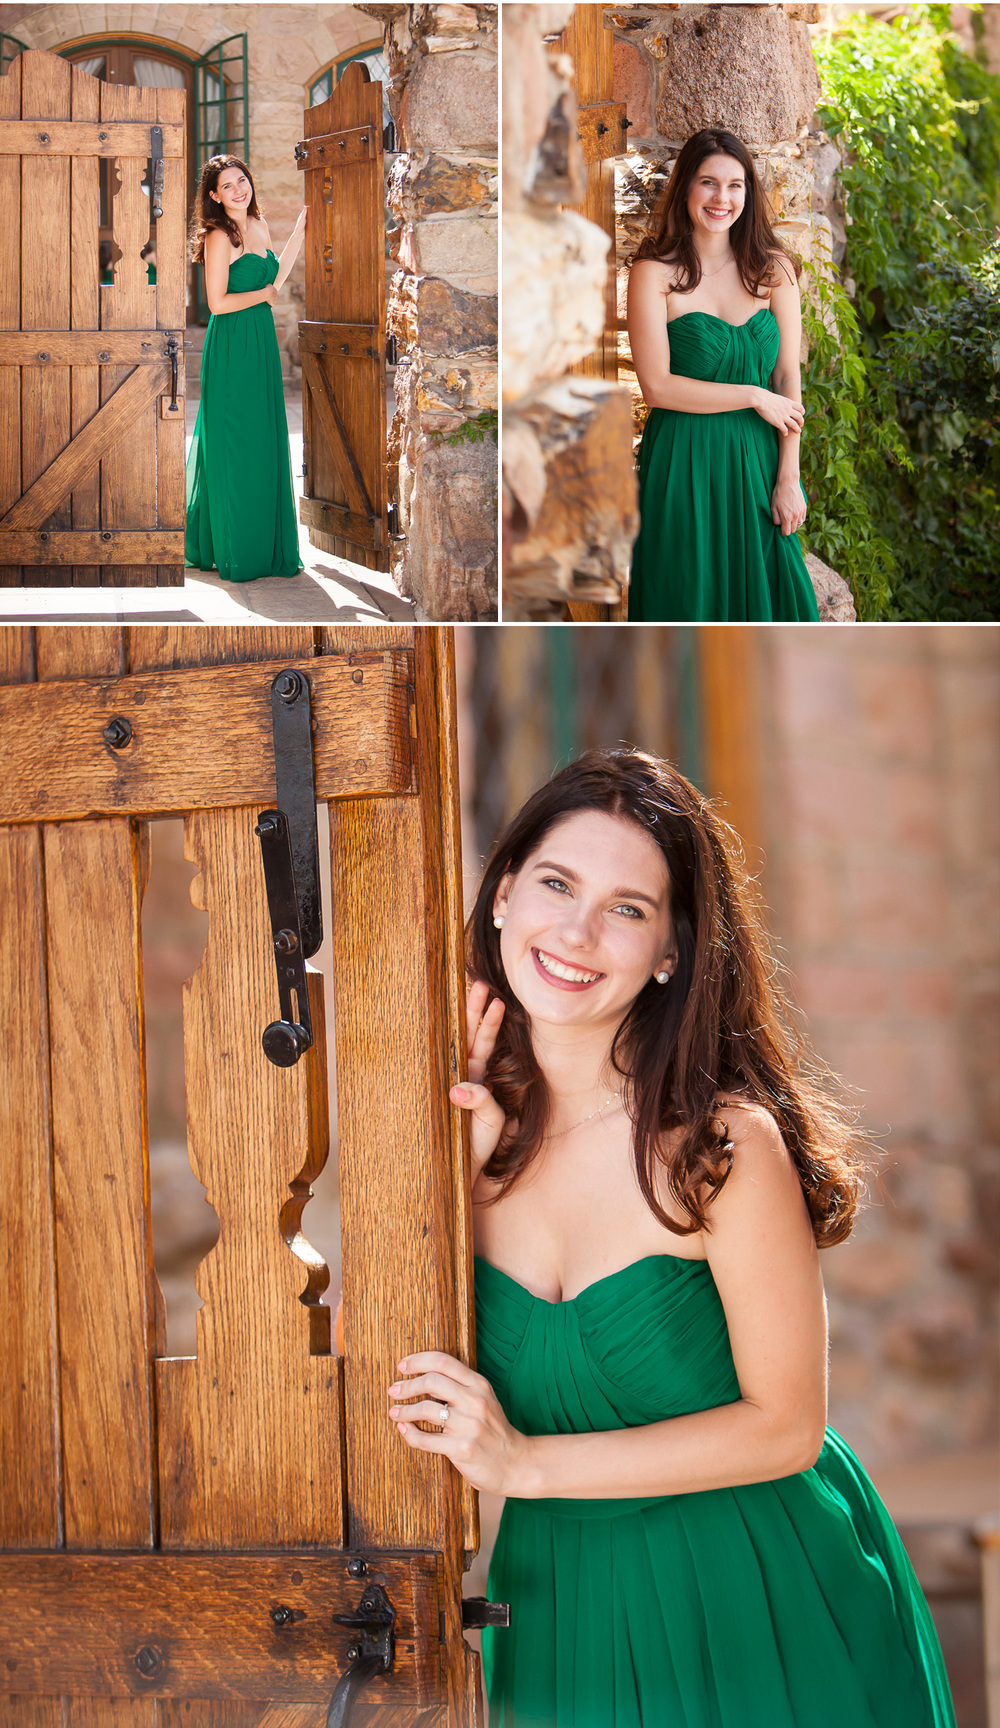 Senior pictures at Cherokee Castle & Ranch south of Denver Colorado, with photographer Jennifer Koskinen | Merritt Portrait Studio